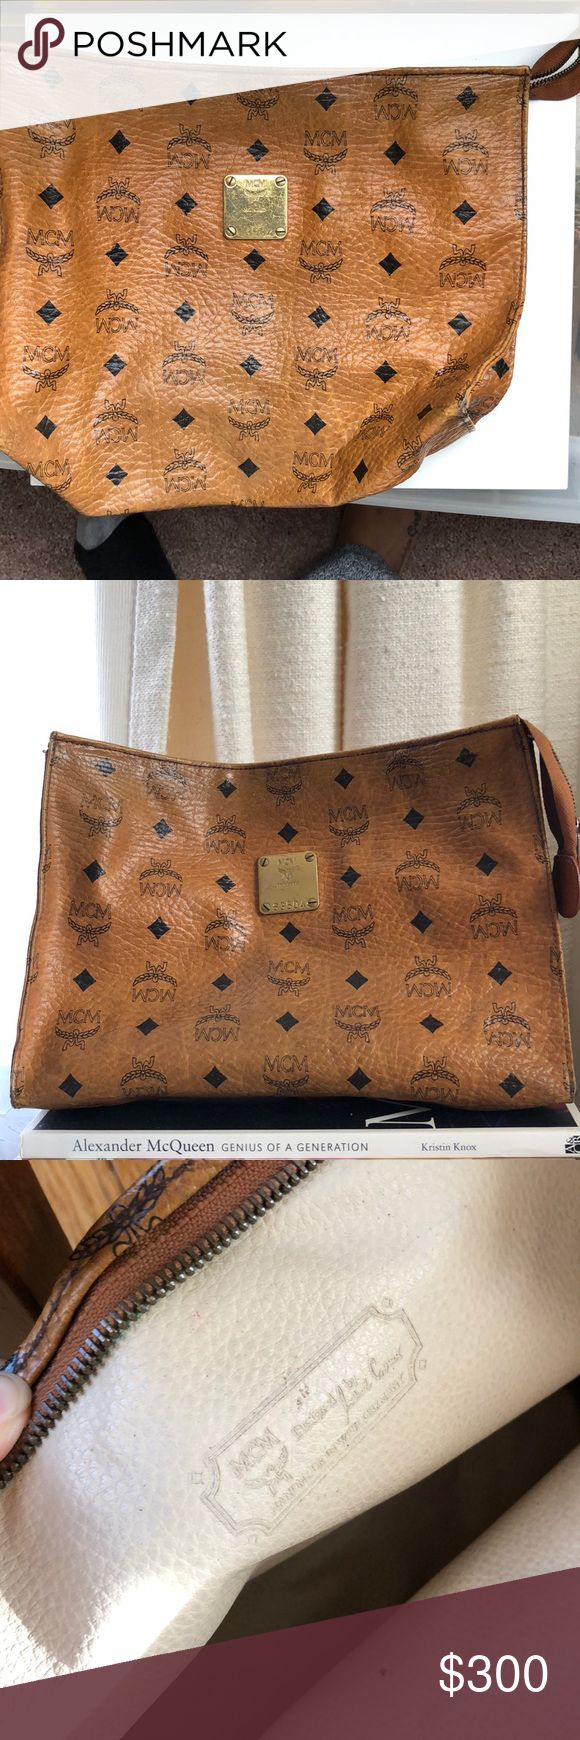 MCM Clutch - Vintage 100% Authentic. Great as a Clutch or makeup bag. MCM Bags Clutches & Wristlets